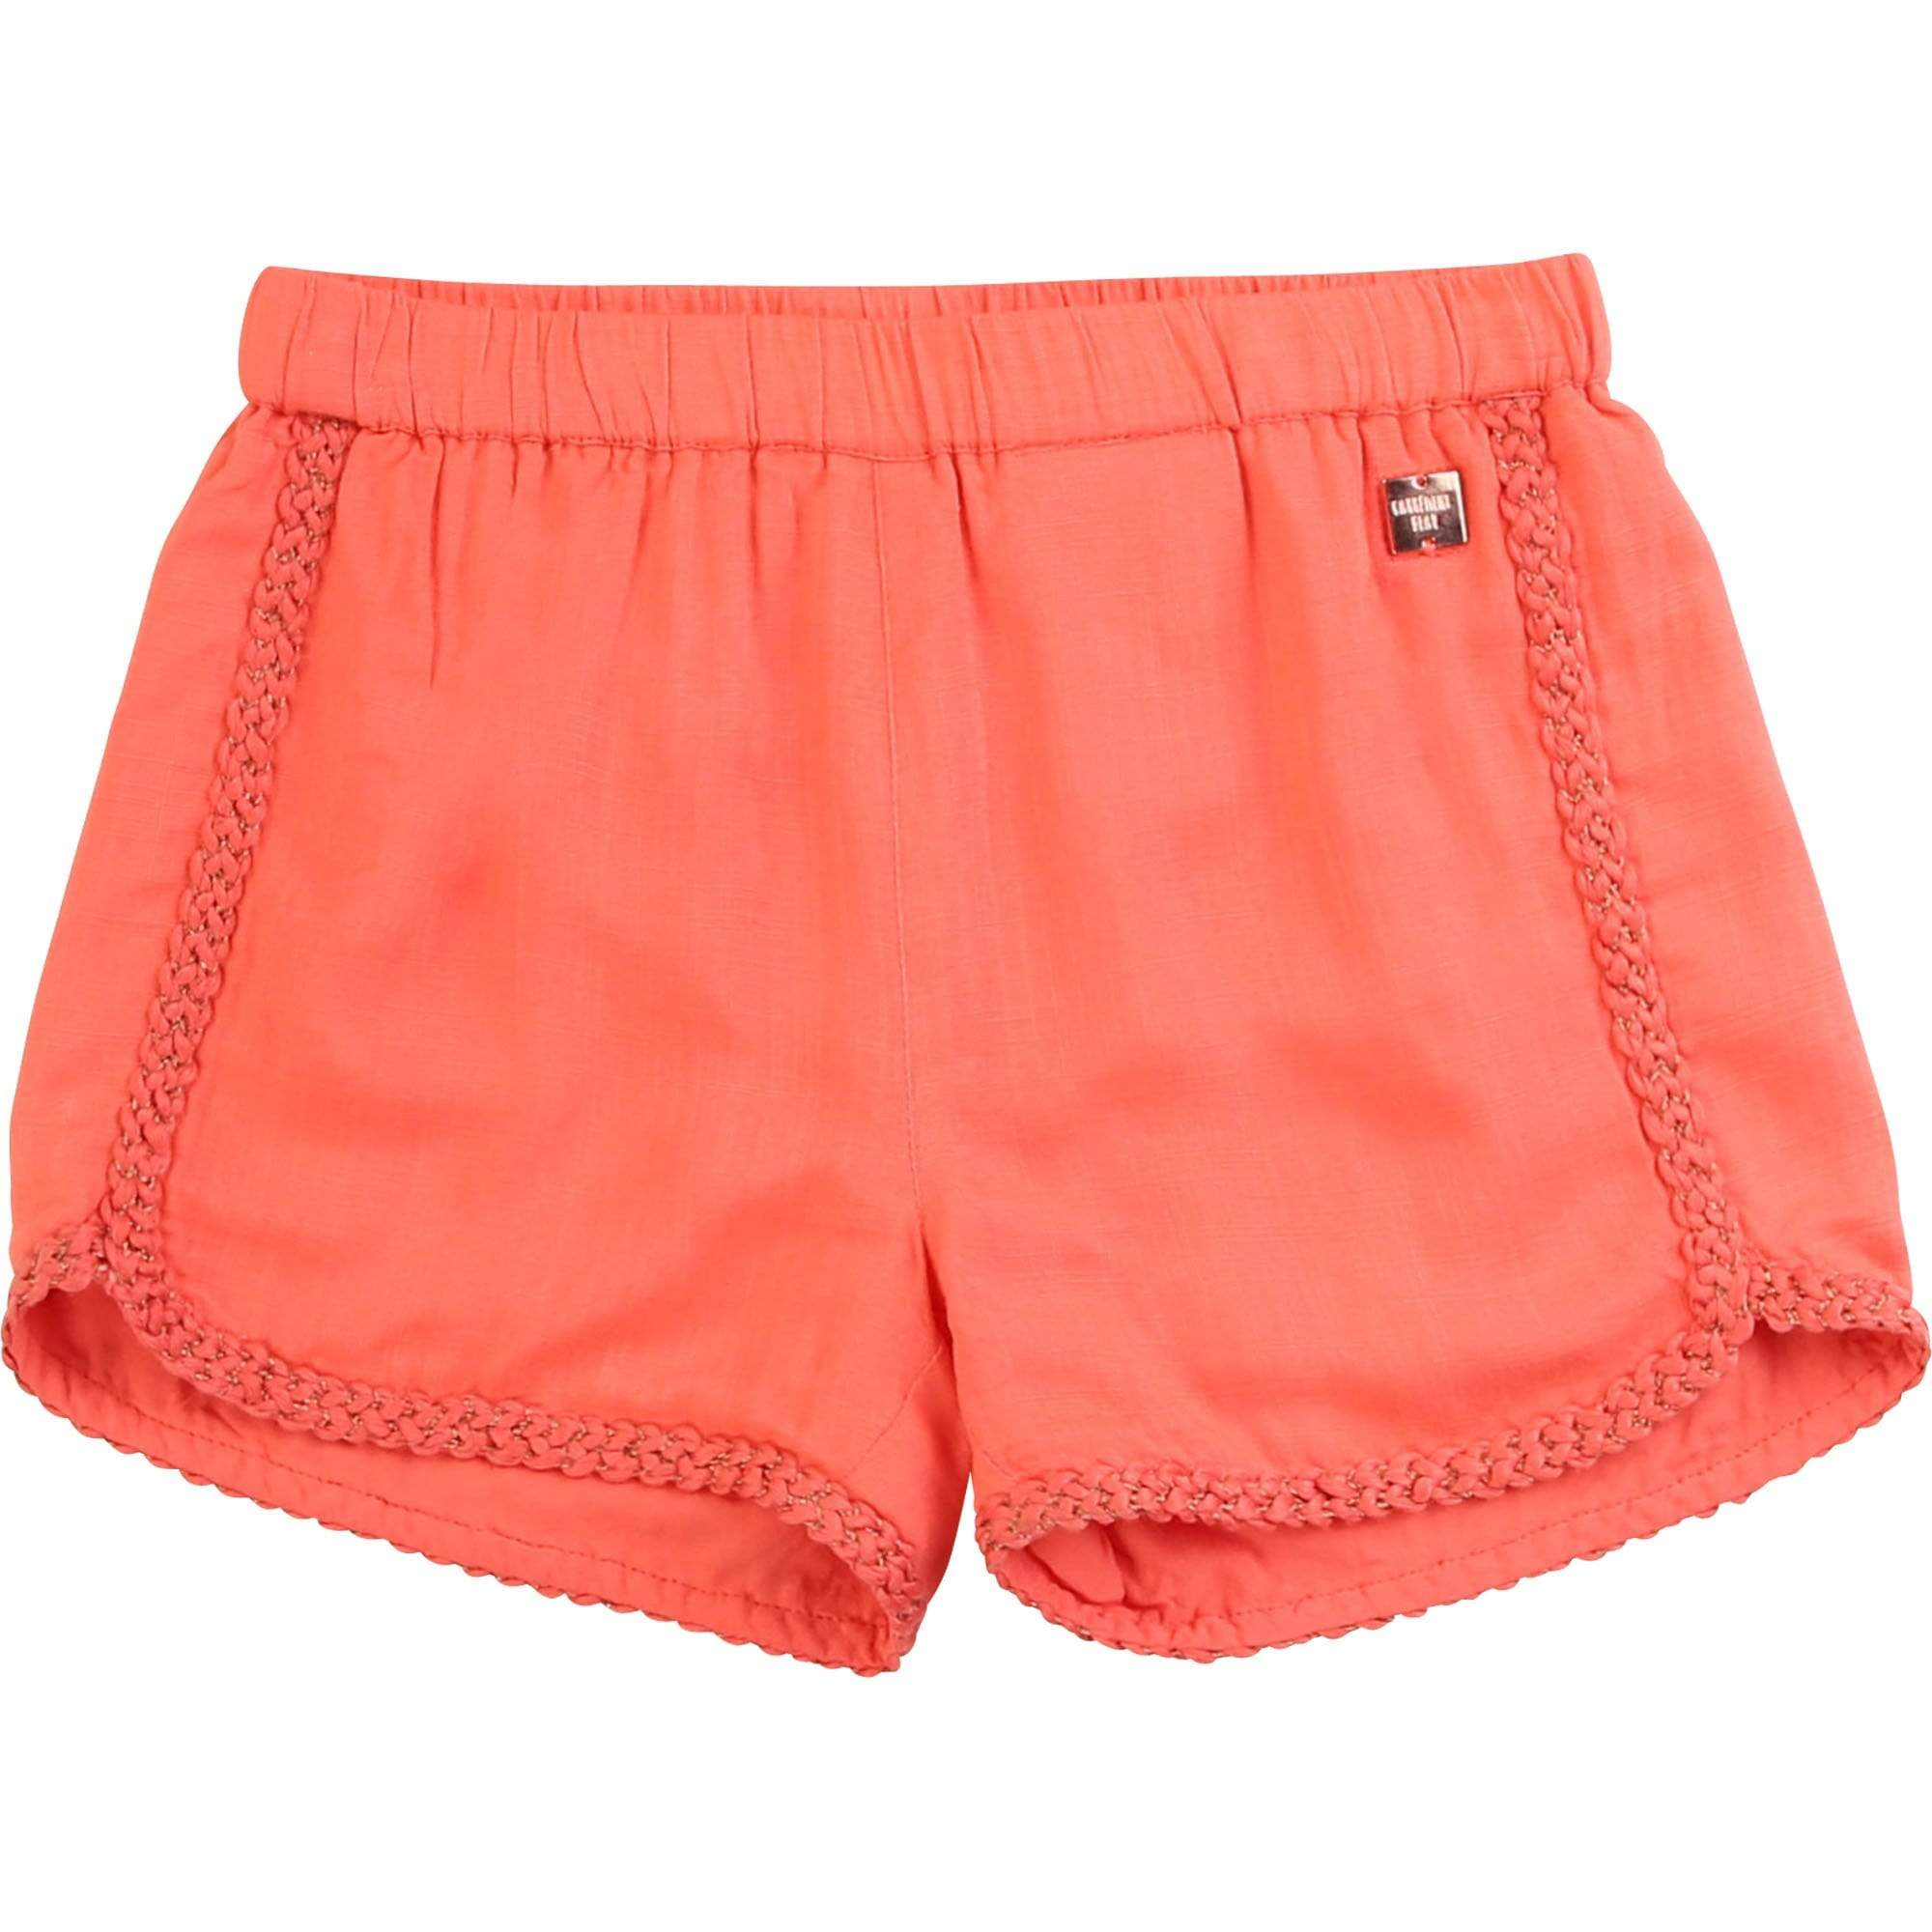 Carrément Beau Shorts Short rose corail Coral pink shorts